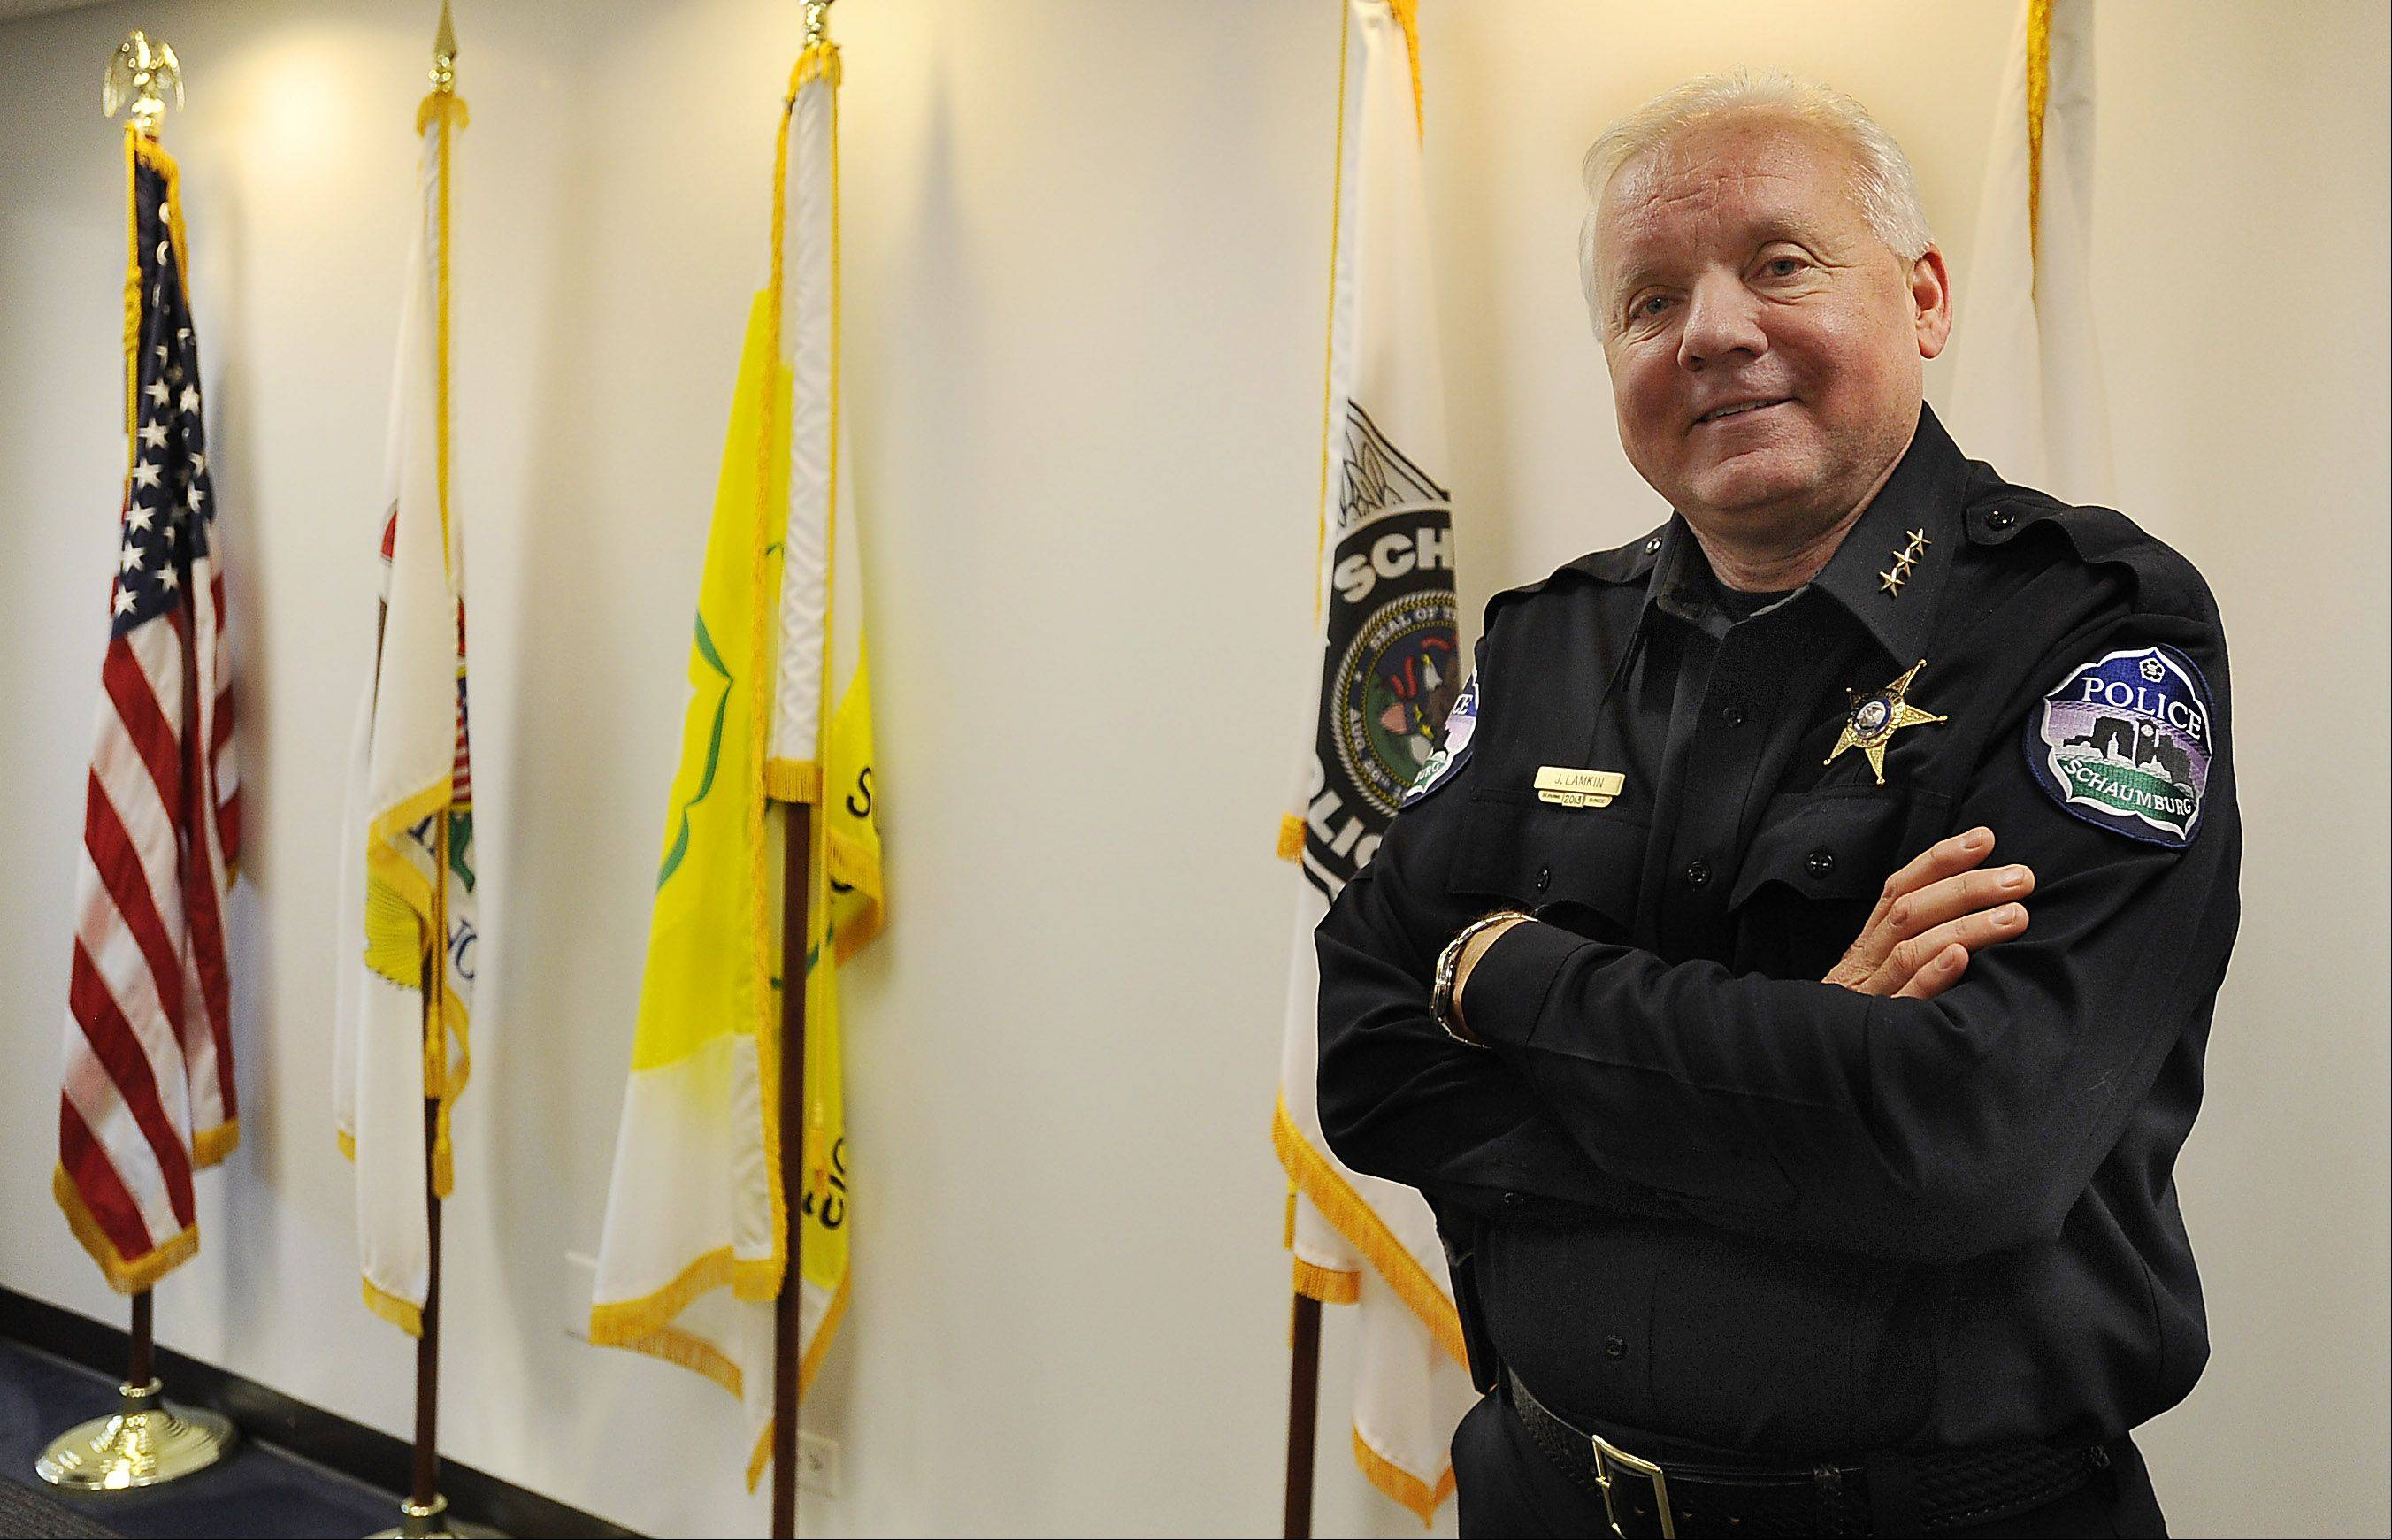 New Schaumburg police chief seeks to inspire